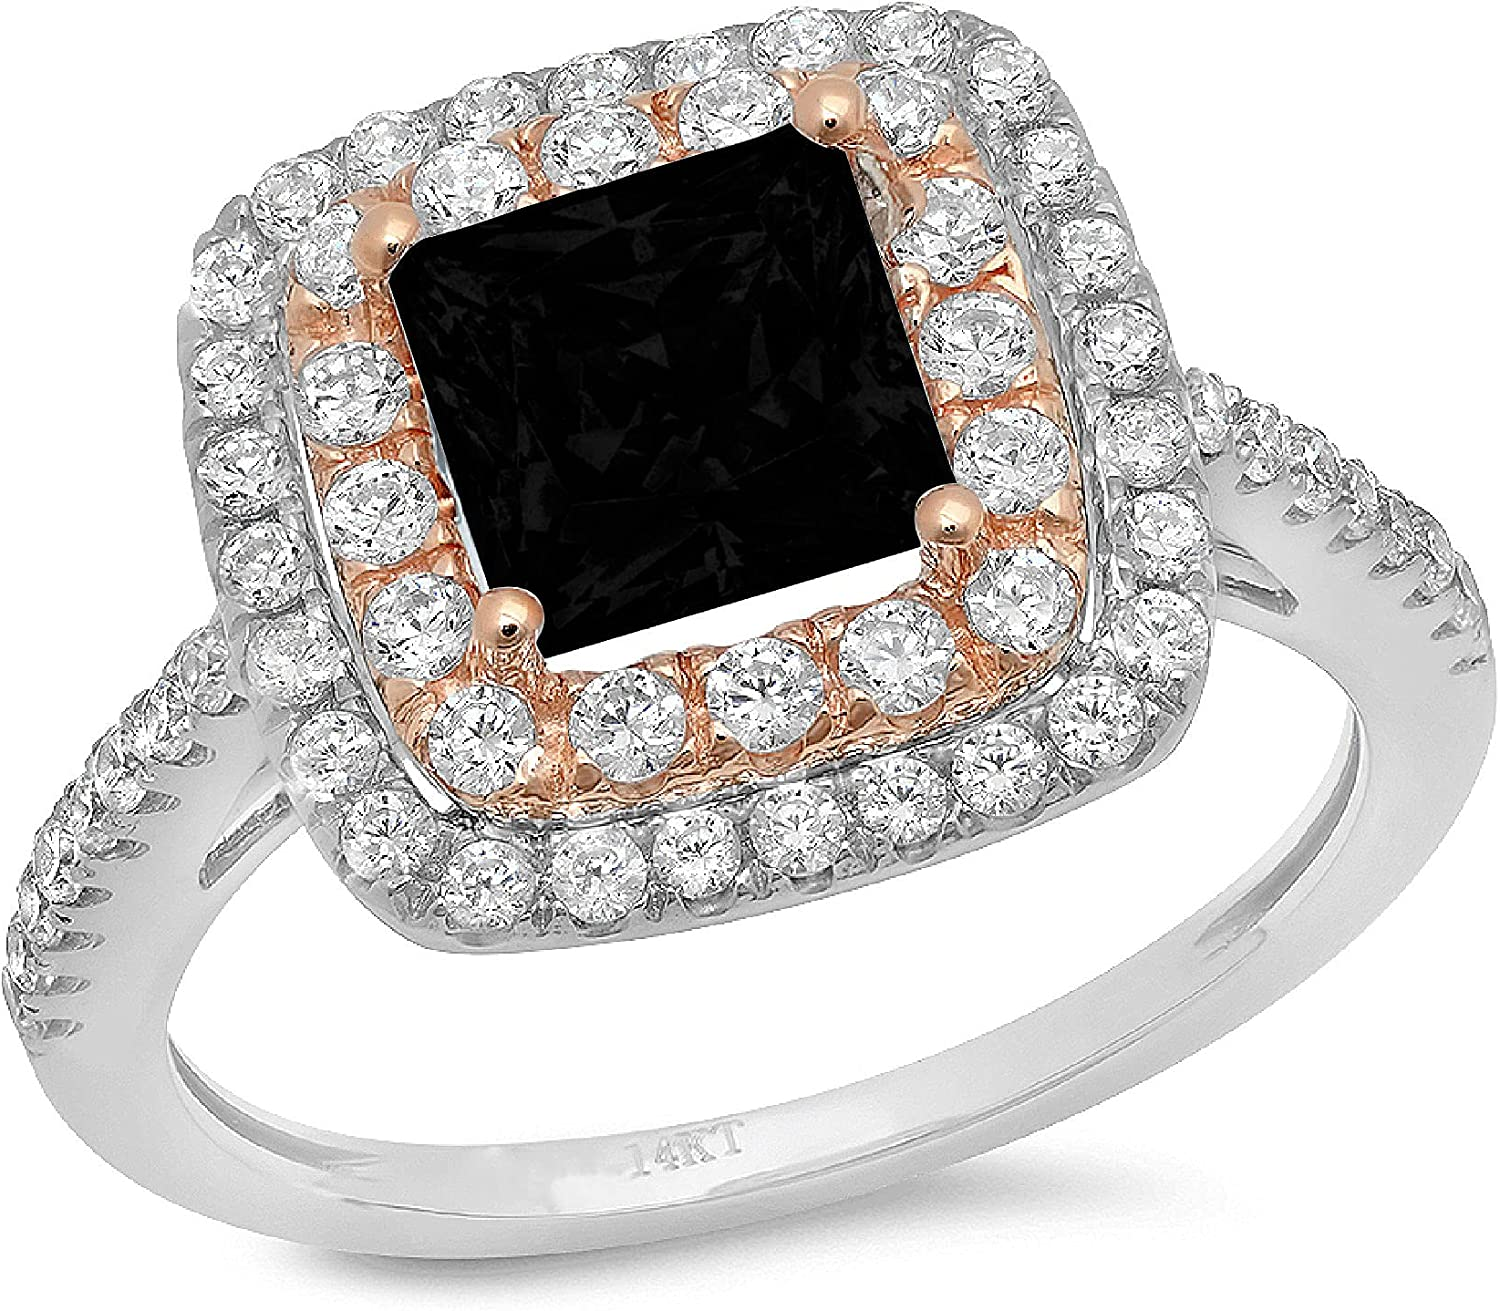 Clara Pucci 2.46 ct Princess Cut Double Halo Solitaire Accent Stunning Genuine Flawless Natural Black Onyx Gem Designer Modern Statement Ring Solid 18K 2 tone Gold